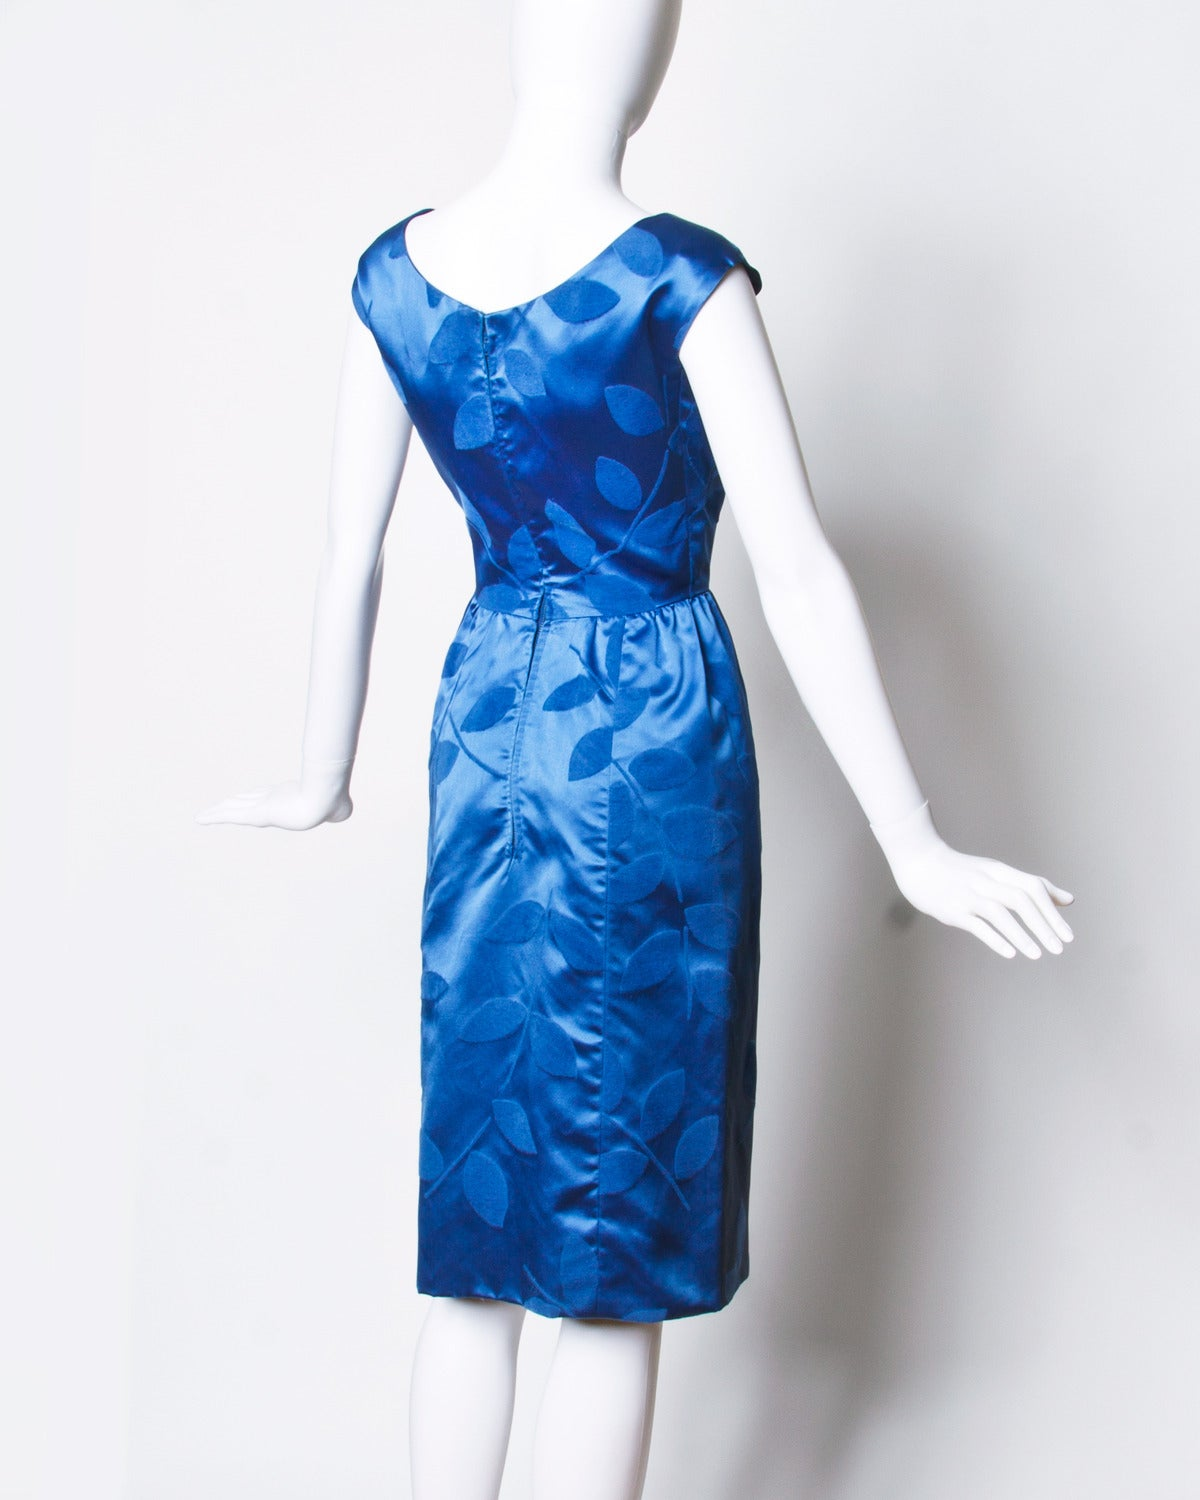 """Vintage blue silk satin cocktail dress with a tiny nipped waist and hourglass silhouette.  Details:  Fully Lined Back Metal Zip Closure Estimated Size: XS Color: Blue Fabric: Silk Satin  Measurements:  Bust: 34"""" Waist: 24"""" Hips:"""